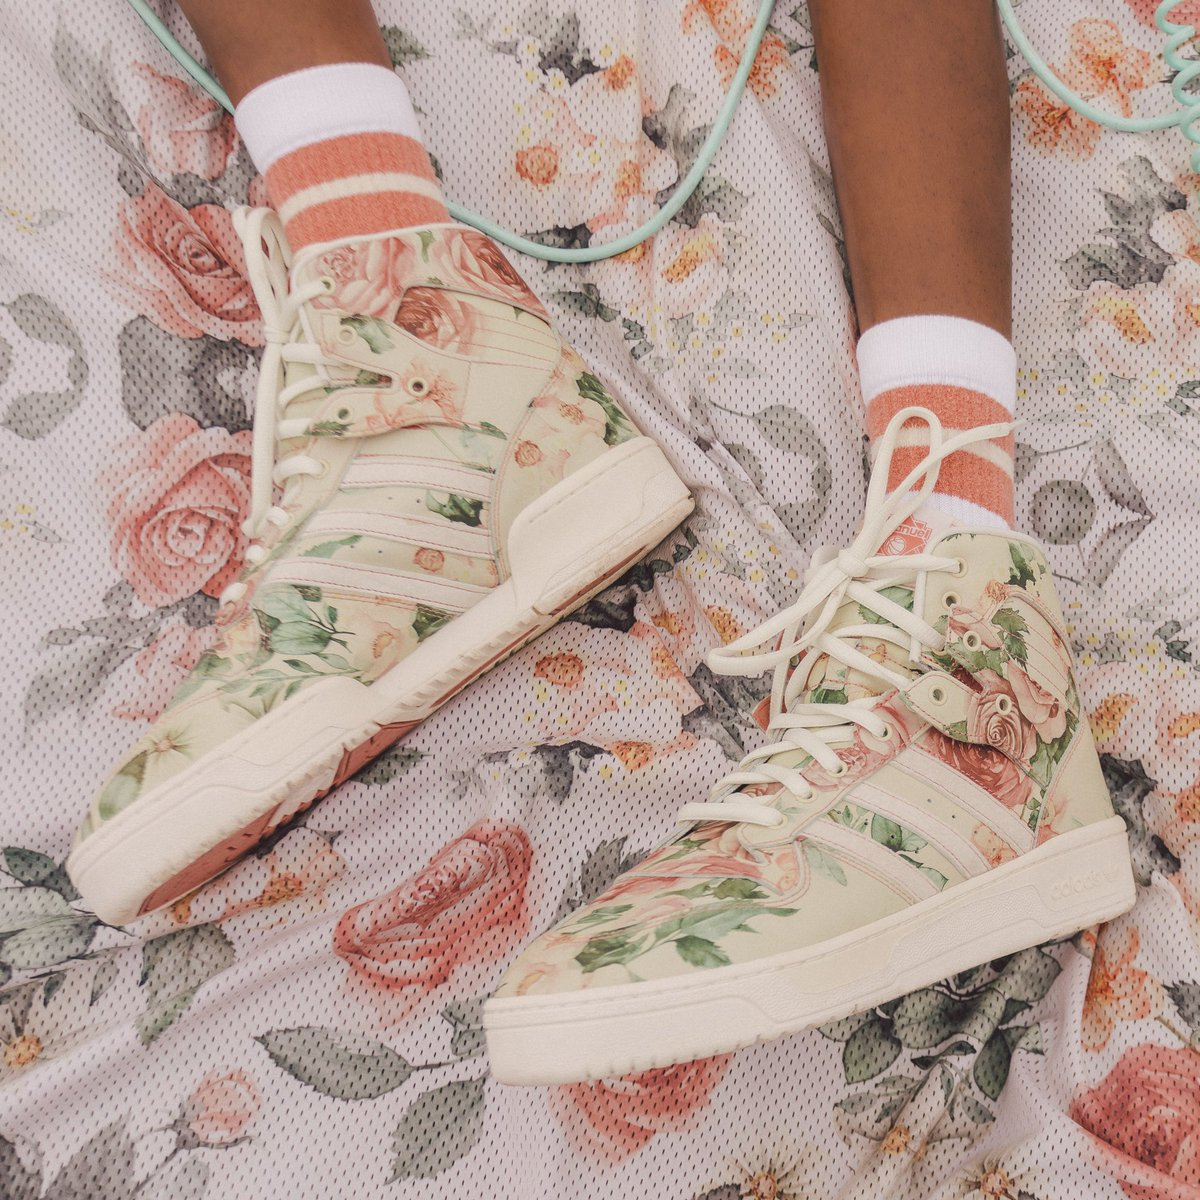 a7474897da4e The floral embellished capsule arrives in adidas stores and online at  http   adidas.com EricEmanuel from April 25th.pic.twitter.com PVSoLVZq9h